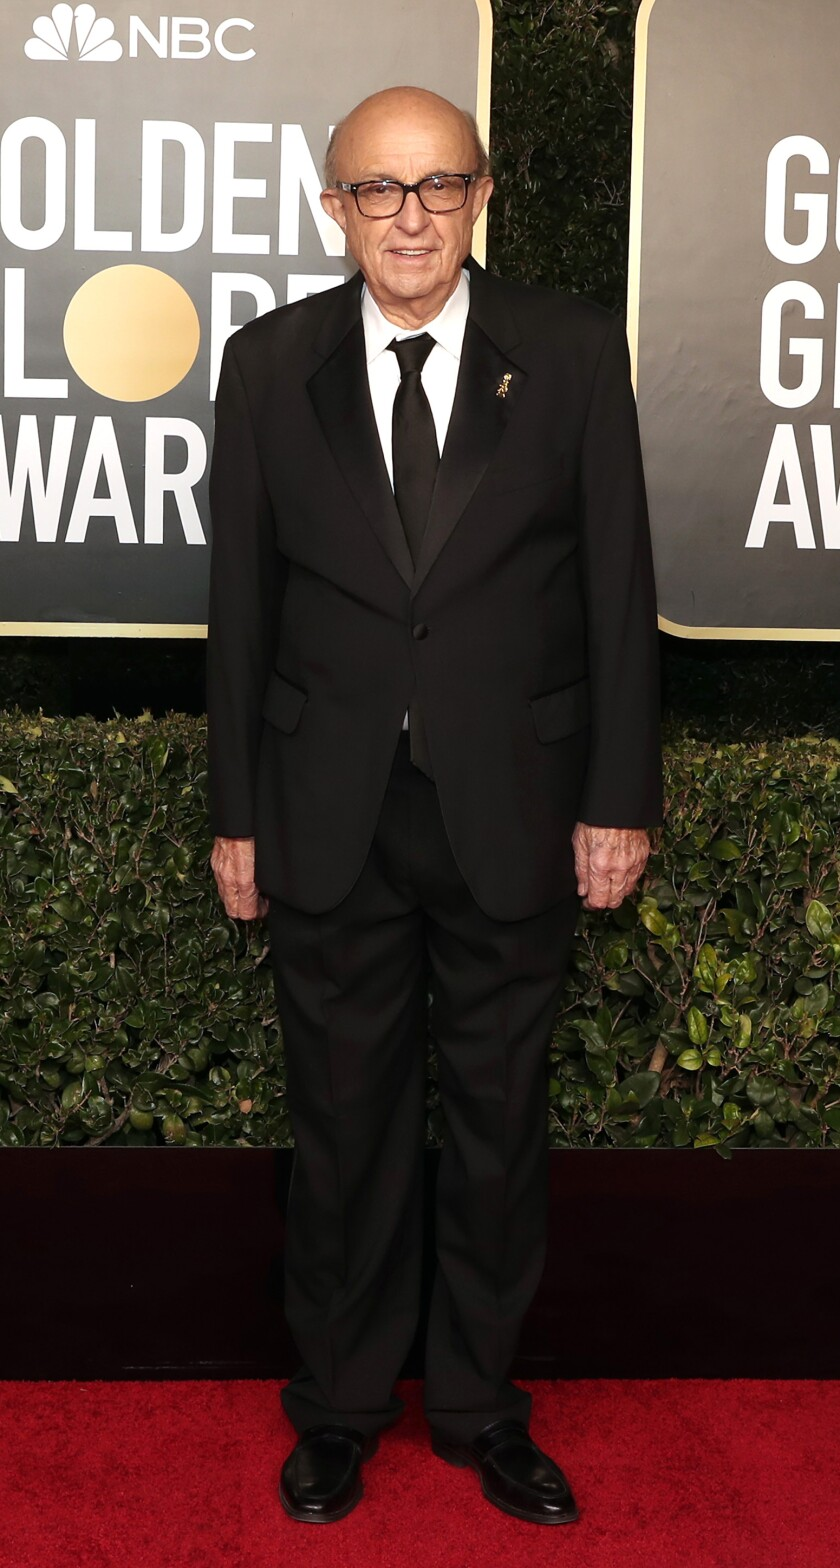 Ali Sar on this year's Golden Globes red carpet